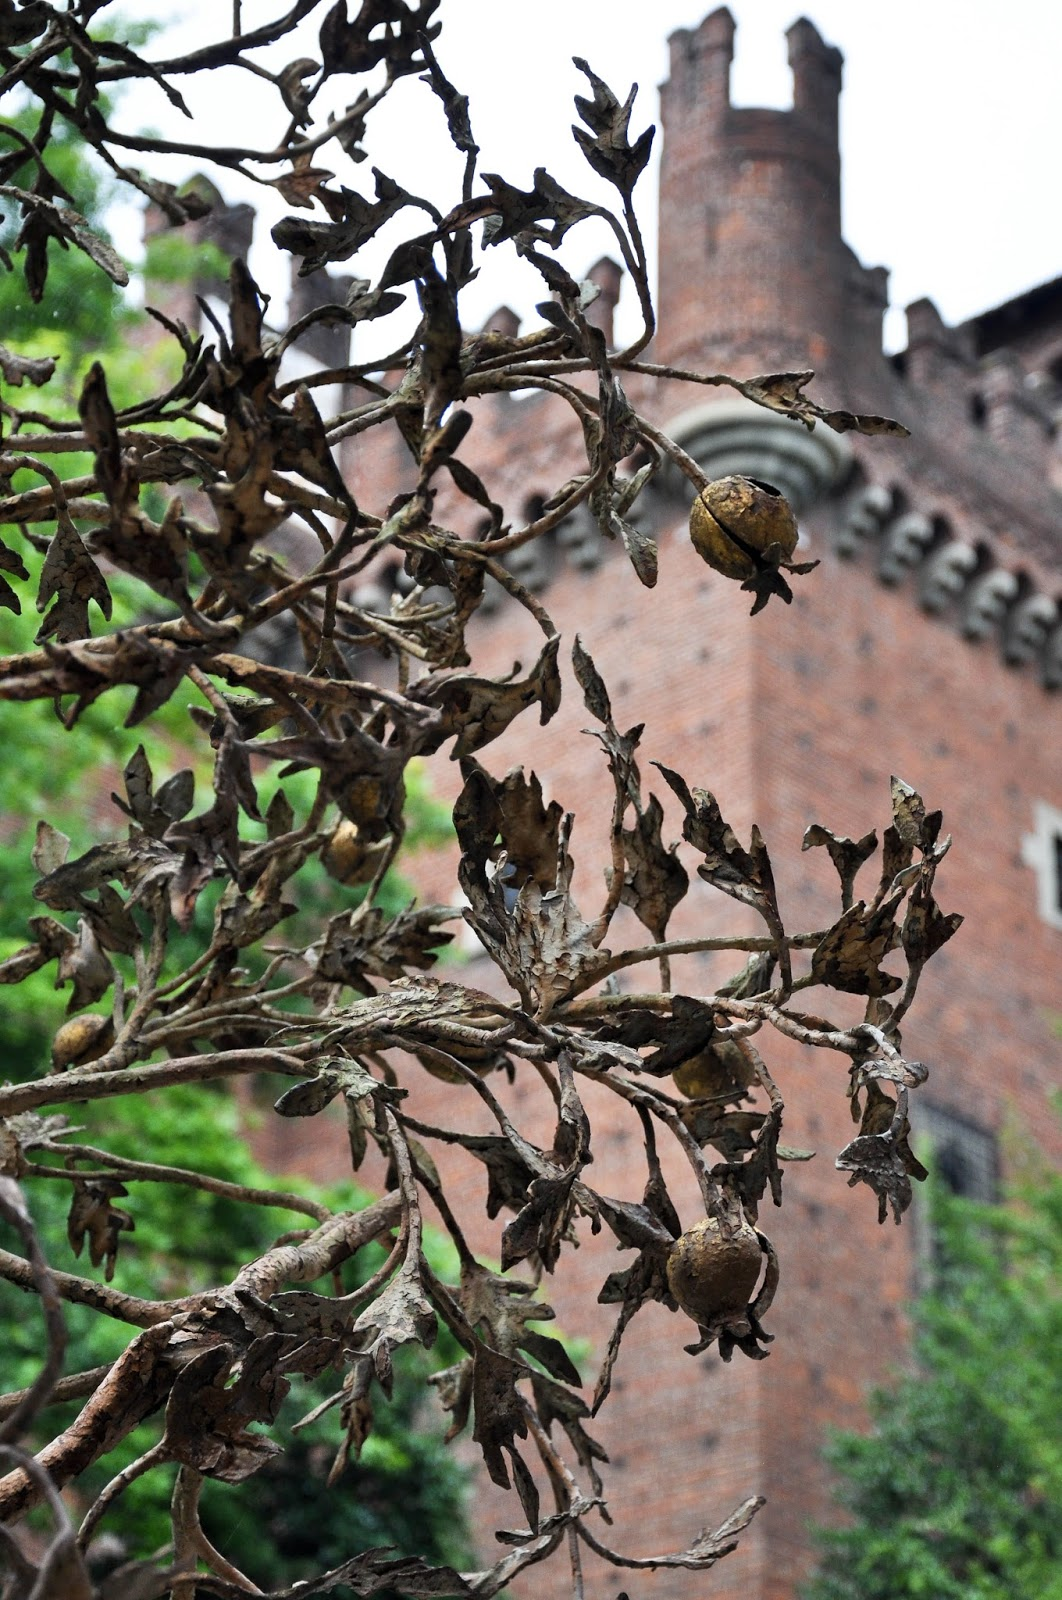 A metal pomegranate tree in Borgo Medievale, Parco Valentino, Turin, Italy